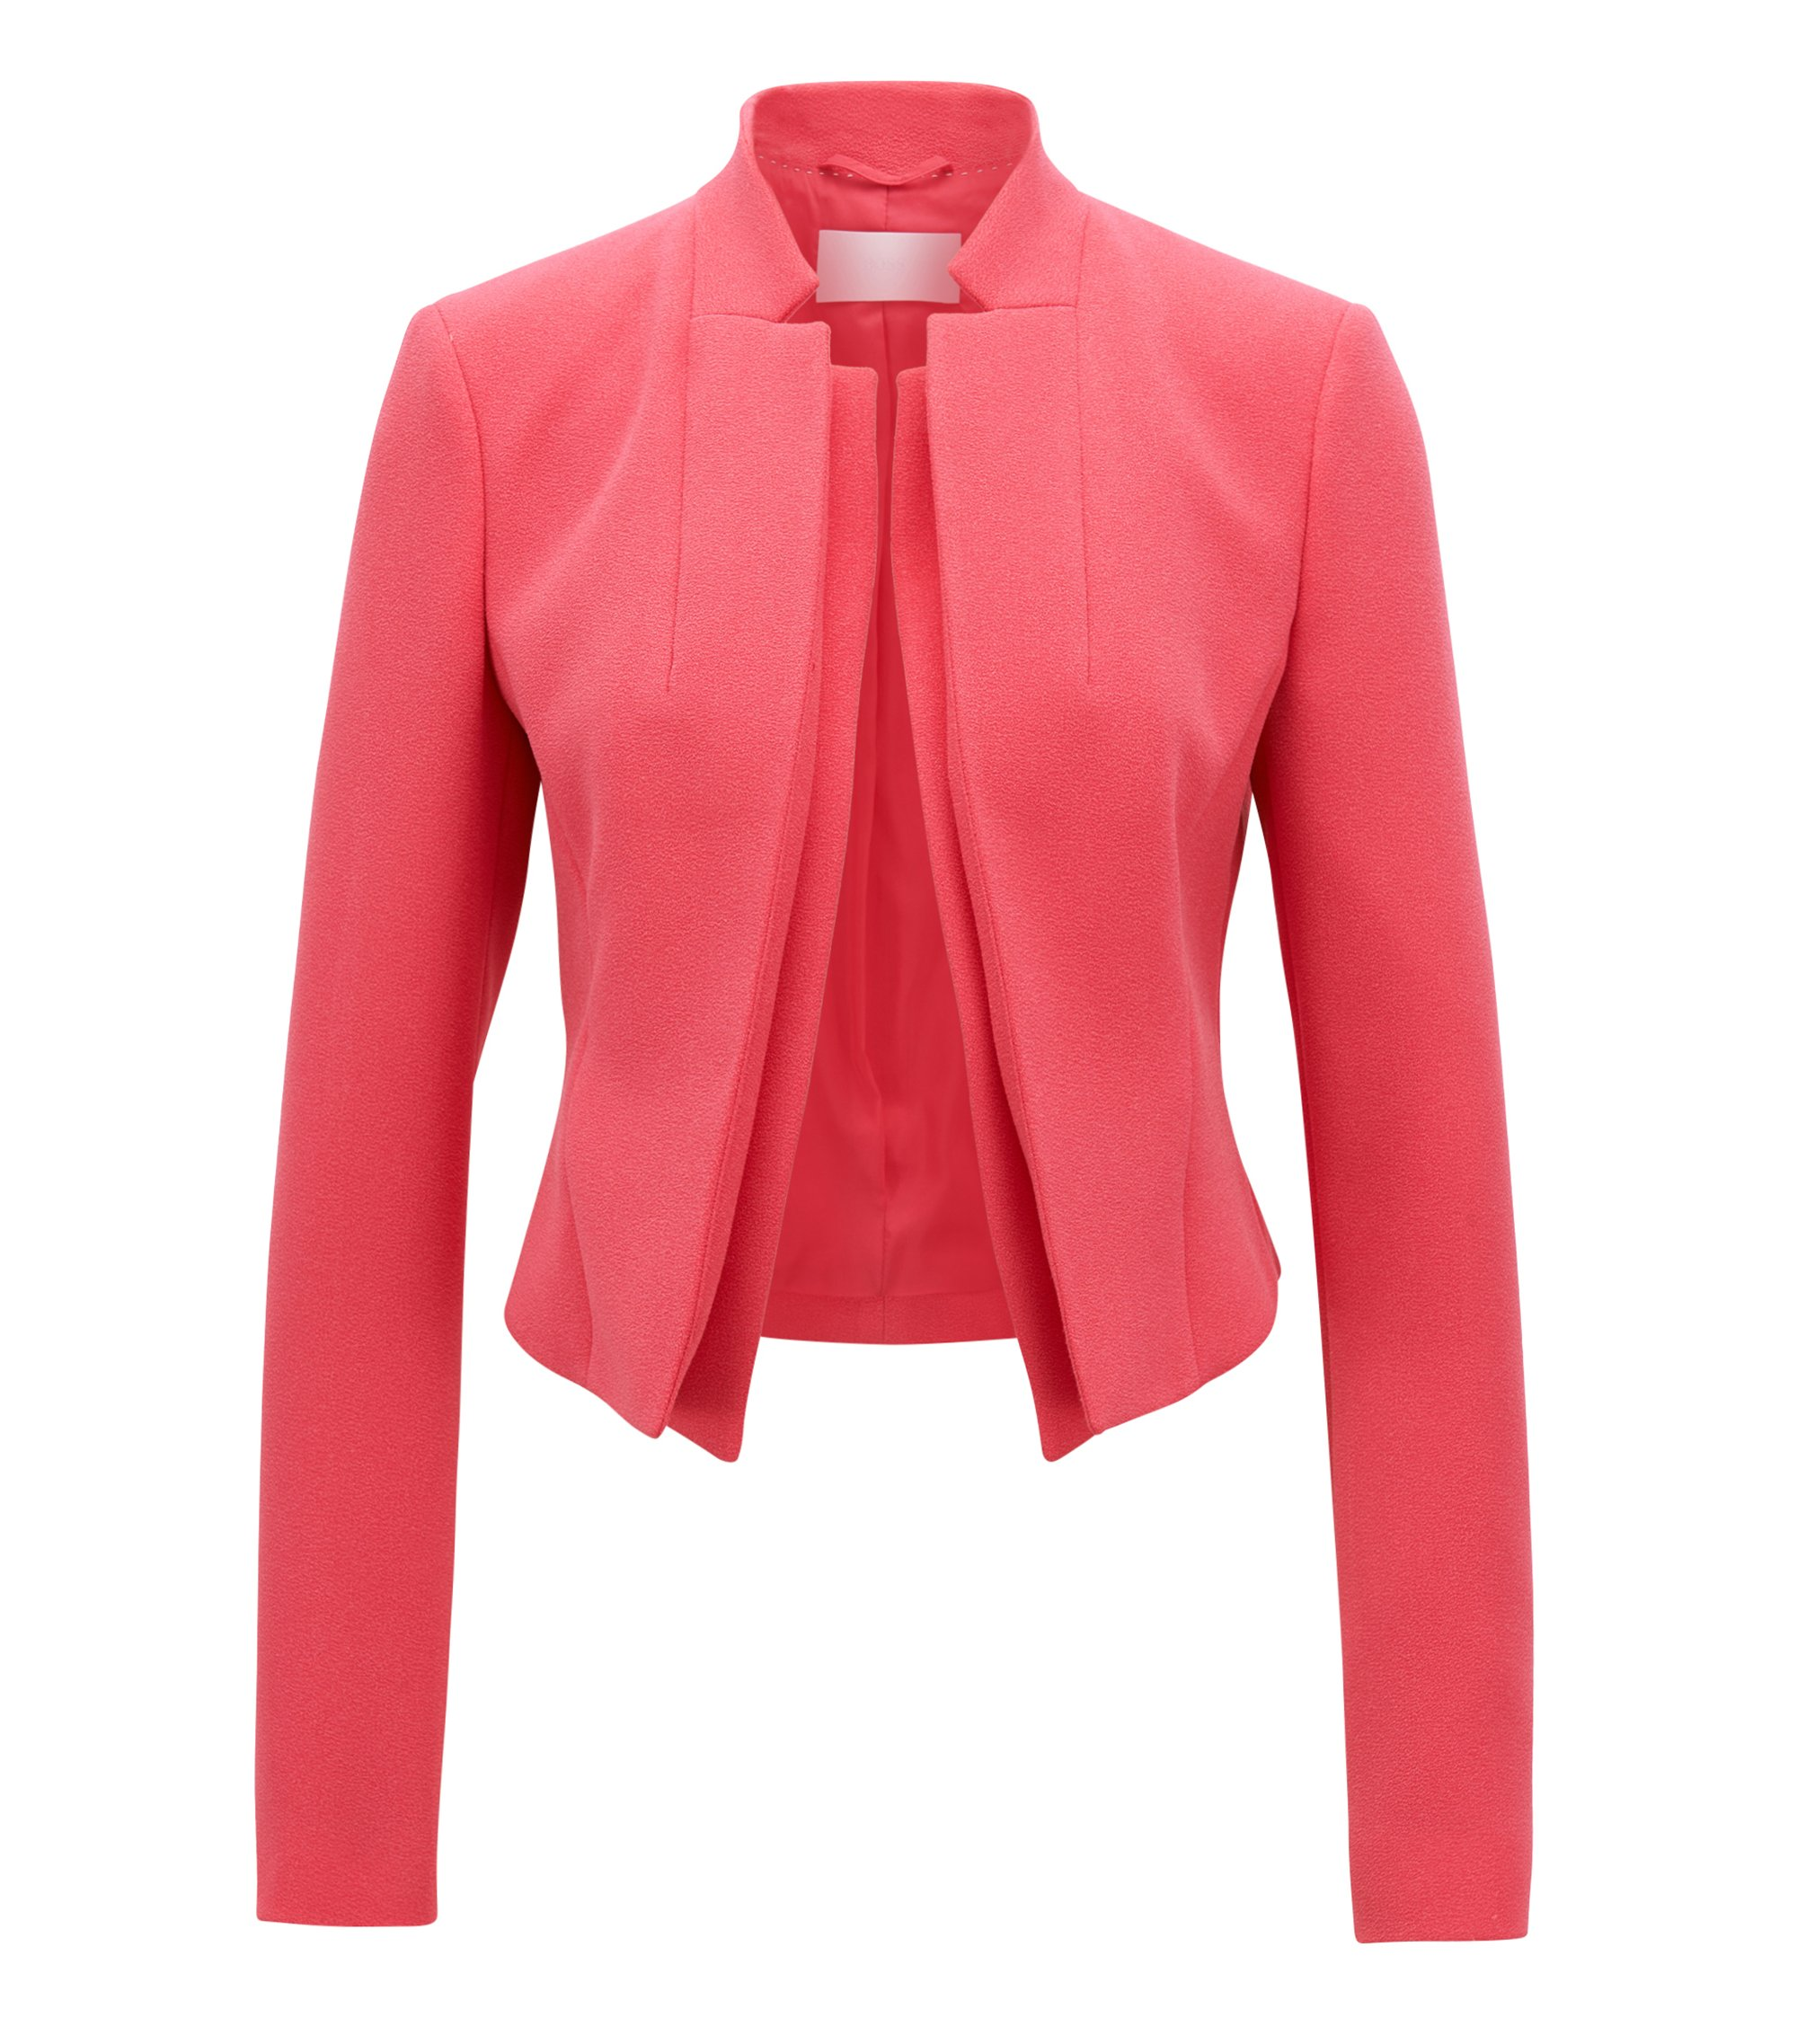 Giacca regular fit in crêpe con revers a doppio strato, Rosa